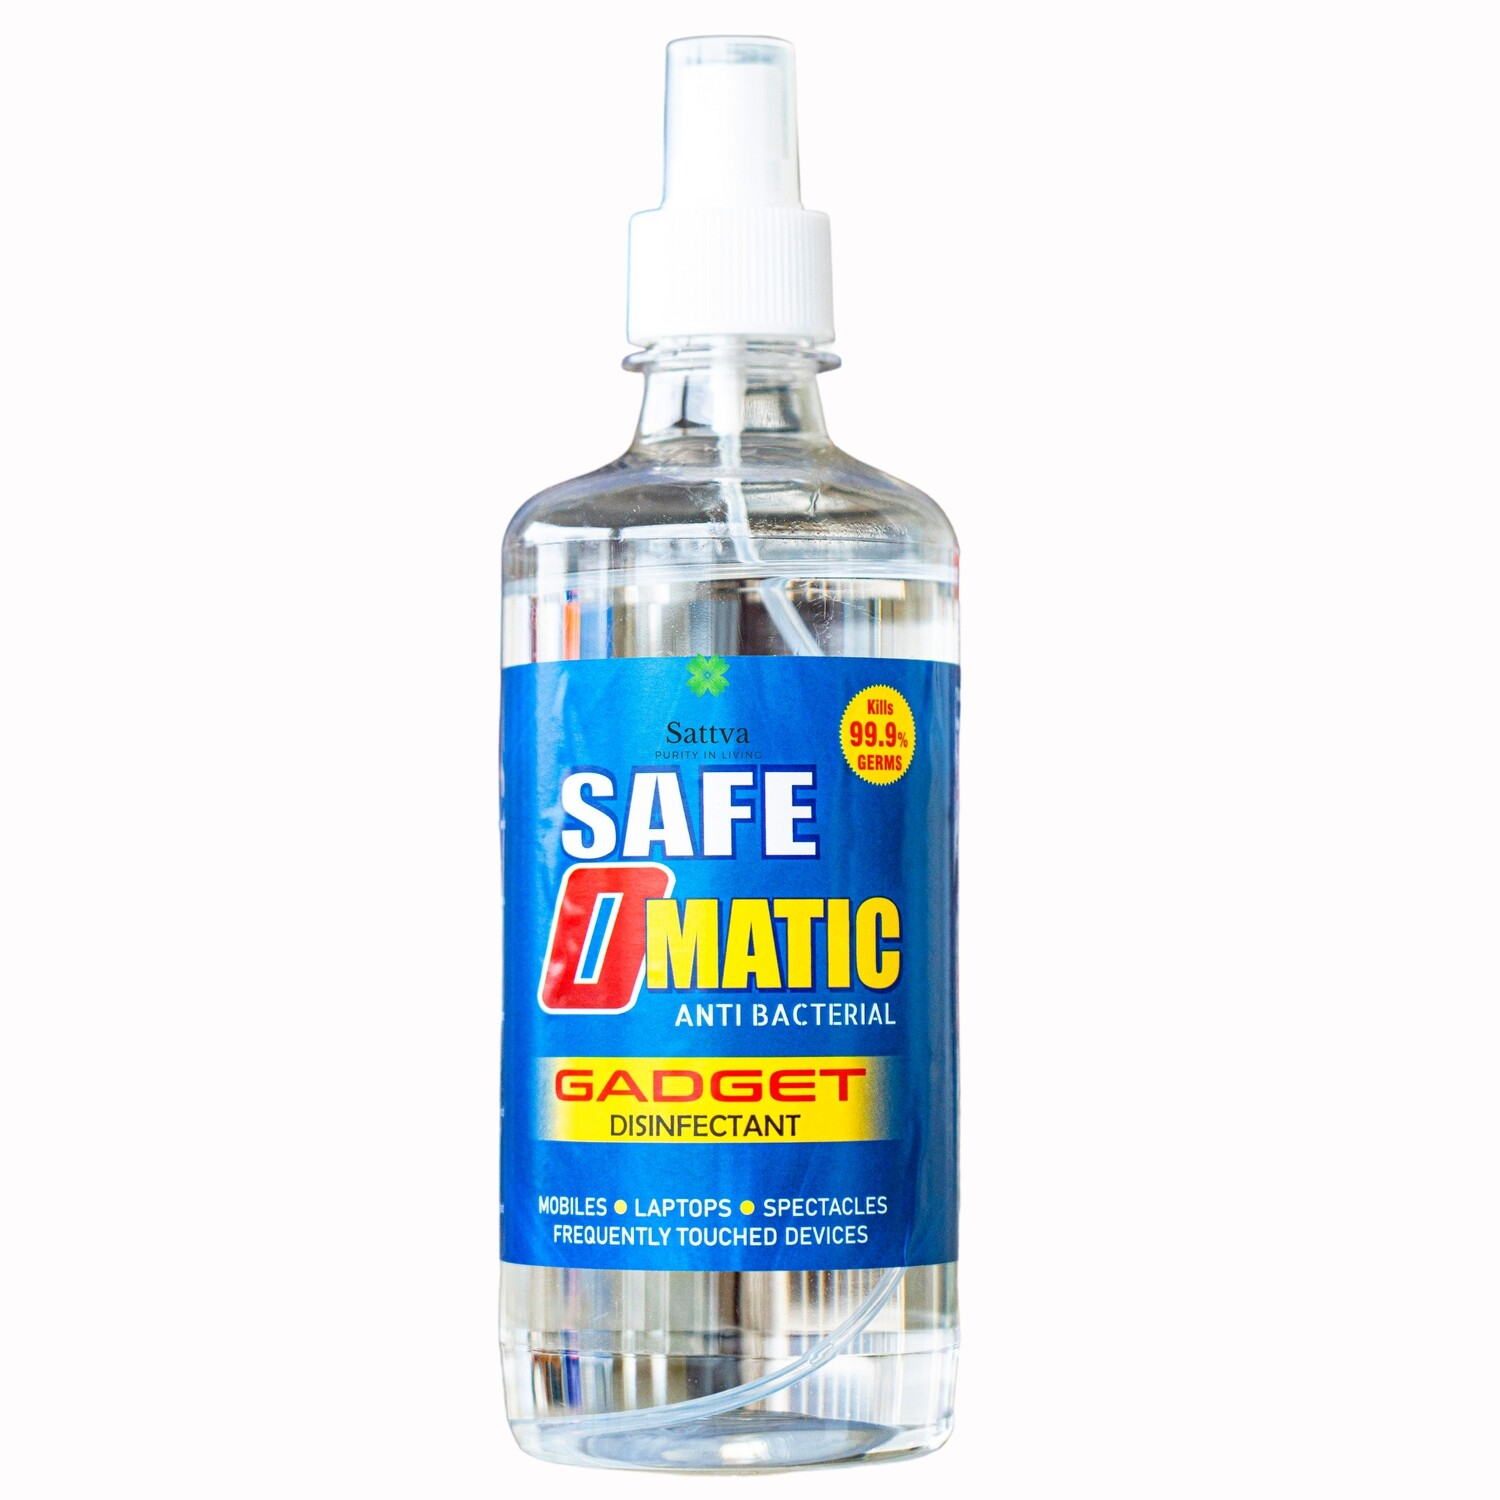 Sattva Safe-O-Matic Gadget Disinfectant and Mobile Cleaner with 99.7% Alcohol,Cleans Dirt, Antibacterial ,Kills 99.9% Germs and Viruses 500ml Spray.